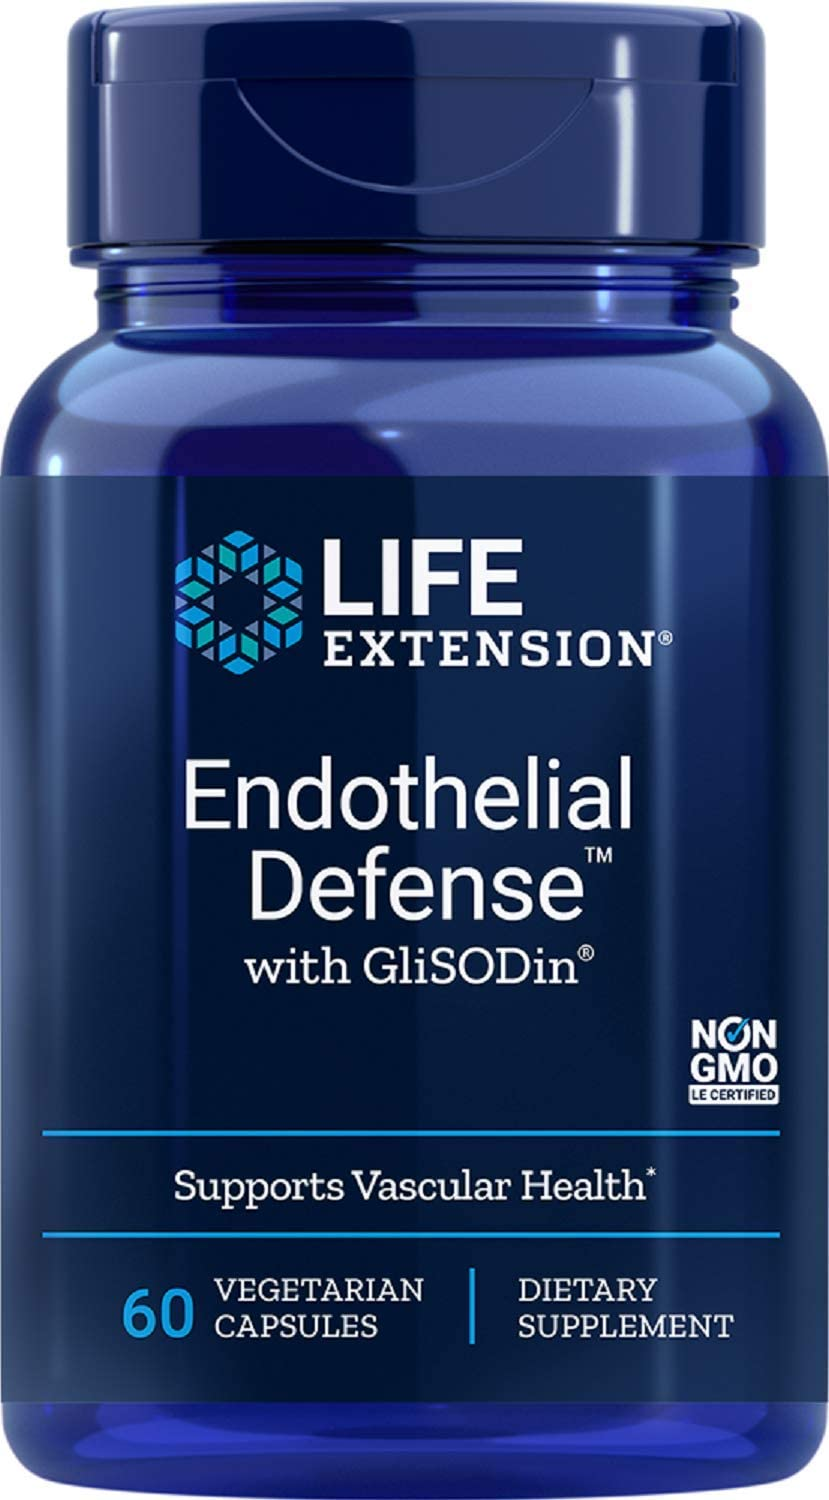 Life Extension Endothelial Defense with Glisodin 60 Vegetarian Capsules